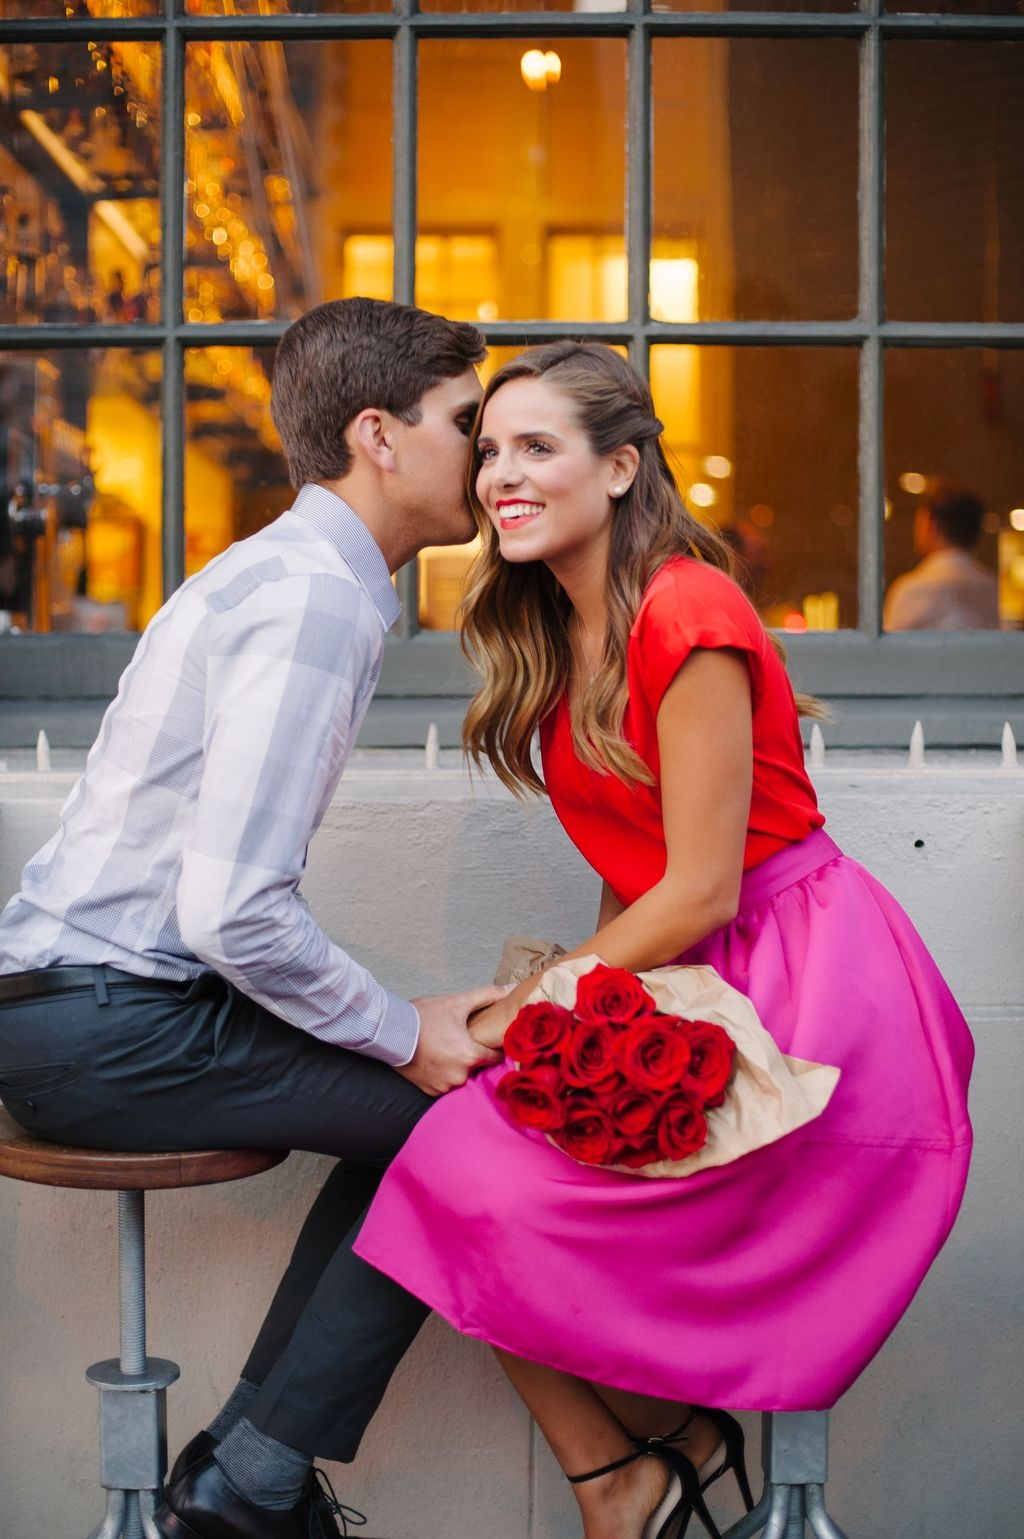 Fascinating Outfit Ideas For A Valentine'S Day Date21